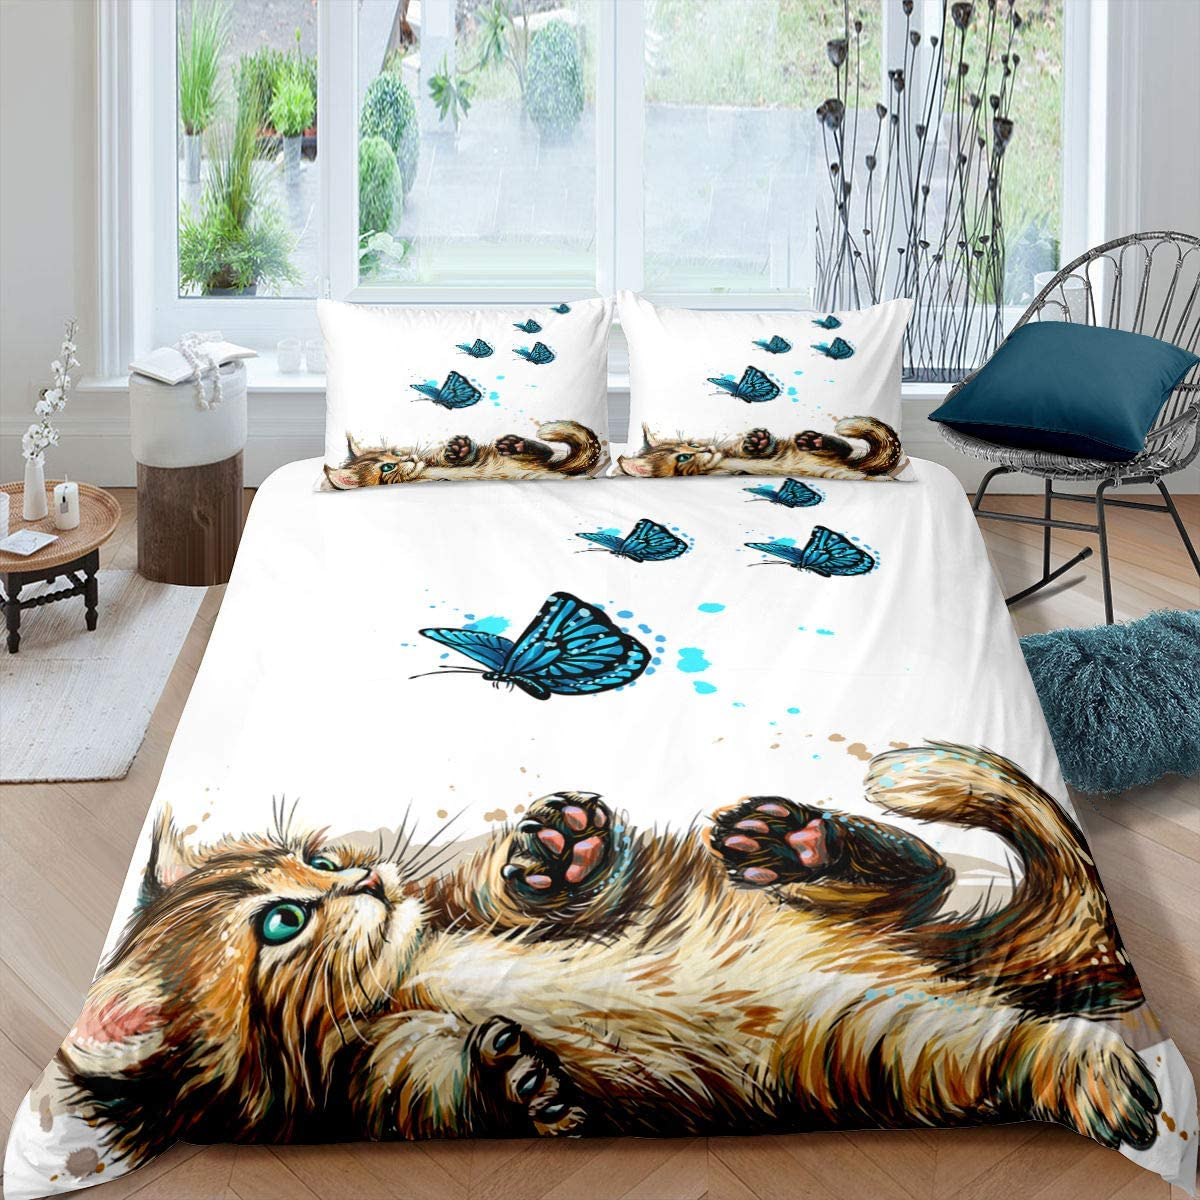 Cat Comforter Cover Blue Butterfly Decor Duvet Cover for Kids Girls Boys Cute Cartoon Oil Painting Cat Pattern Bedding Set Lovely Animal Bedspread with Zipper Ties Soft Microfiber Quilt Set, Twin